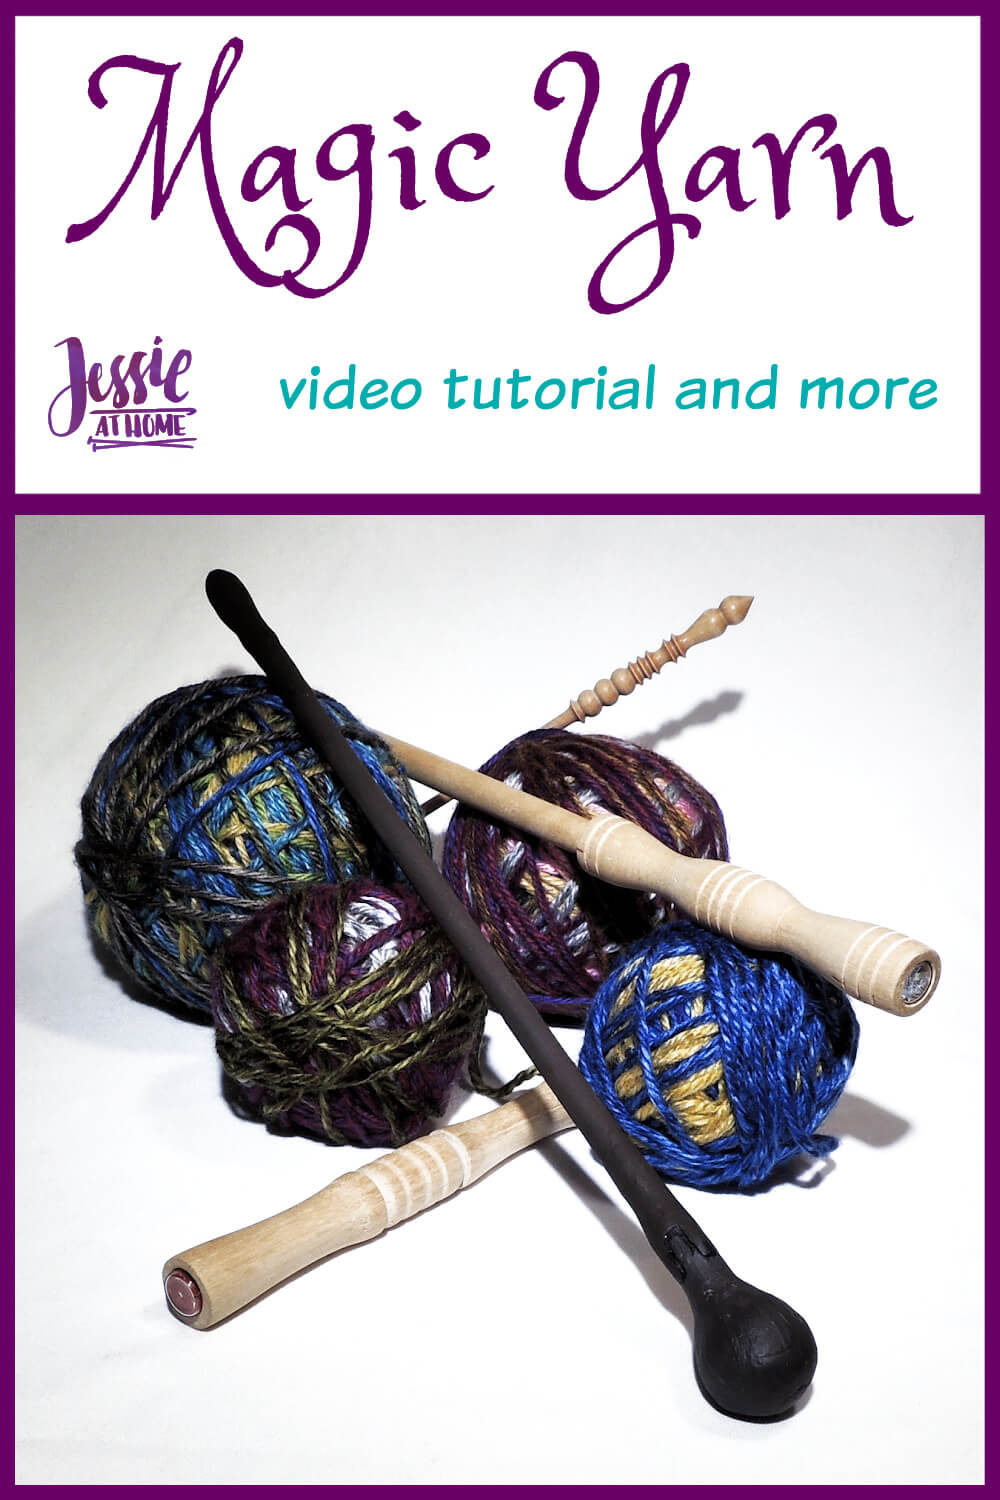 Magic Yarn: video tutorial and more